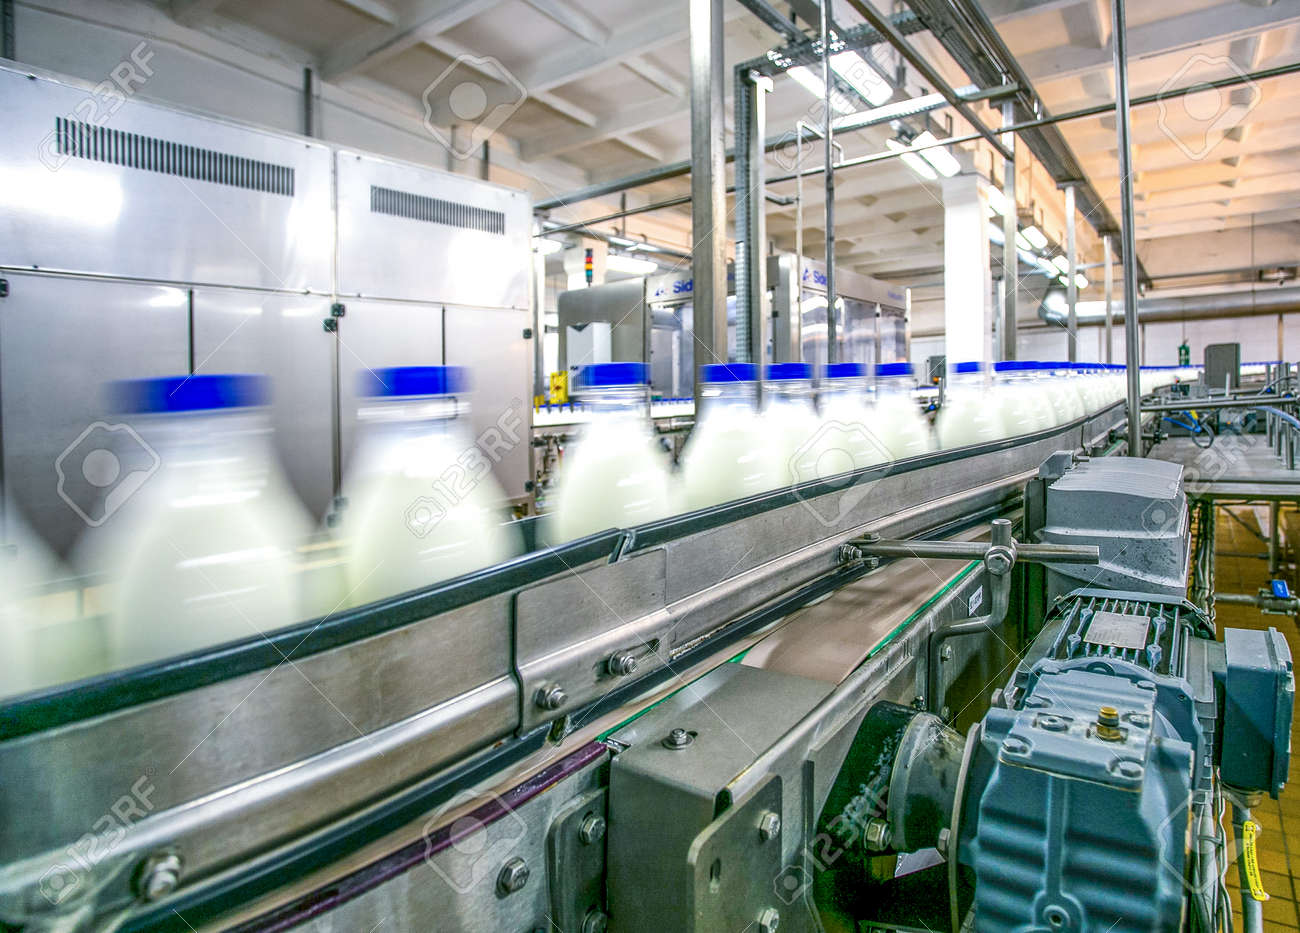 Milk production on line at the factory bottles with milk product in motion focused on conveyer details - 53401428